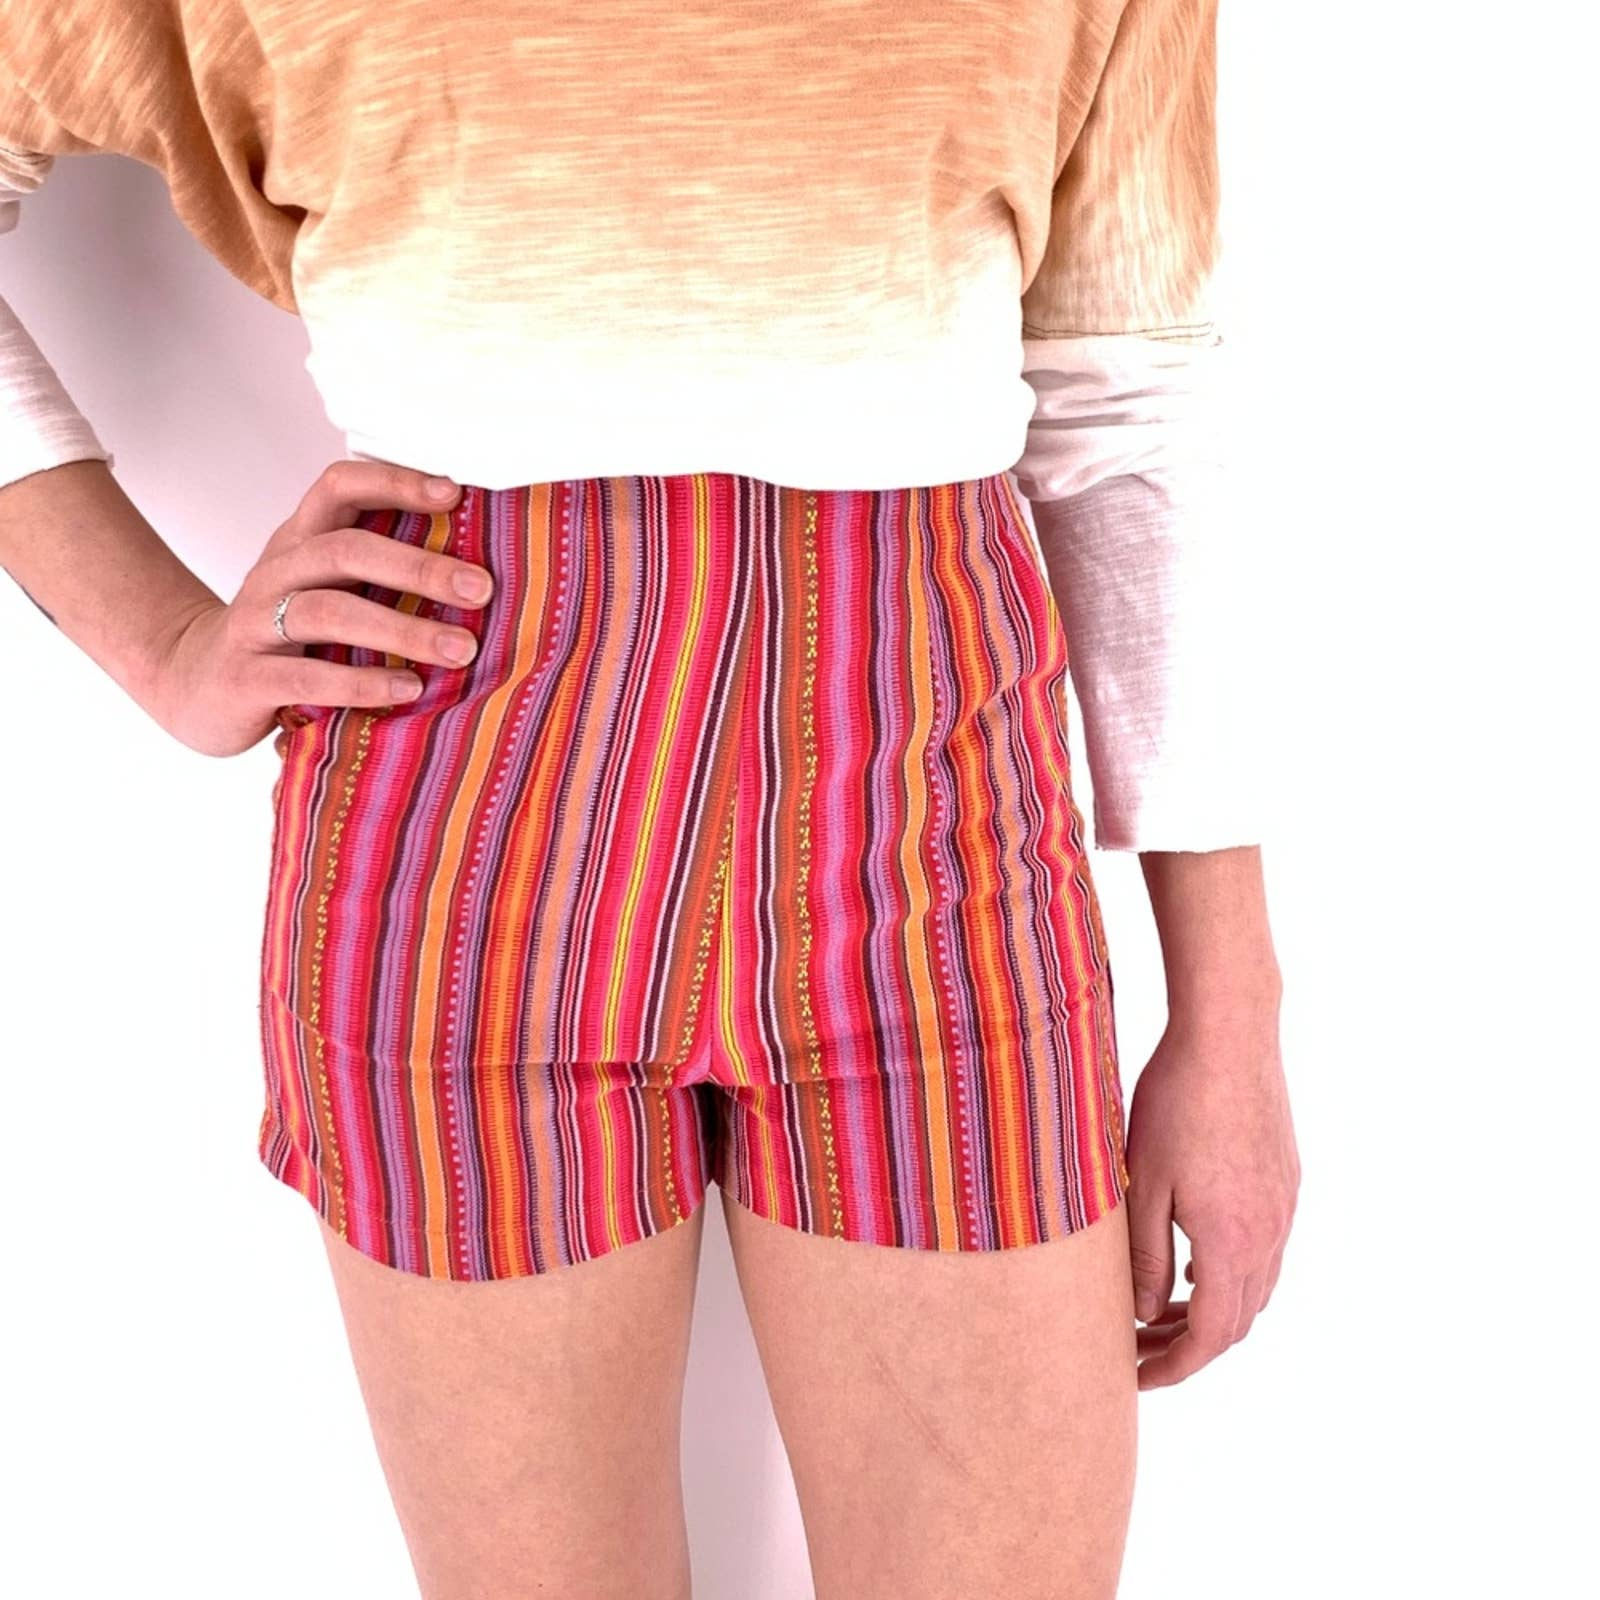 Product Image 1 - Kaisely high-waisted Aztec/tribal woven shorts Sz